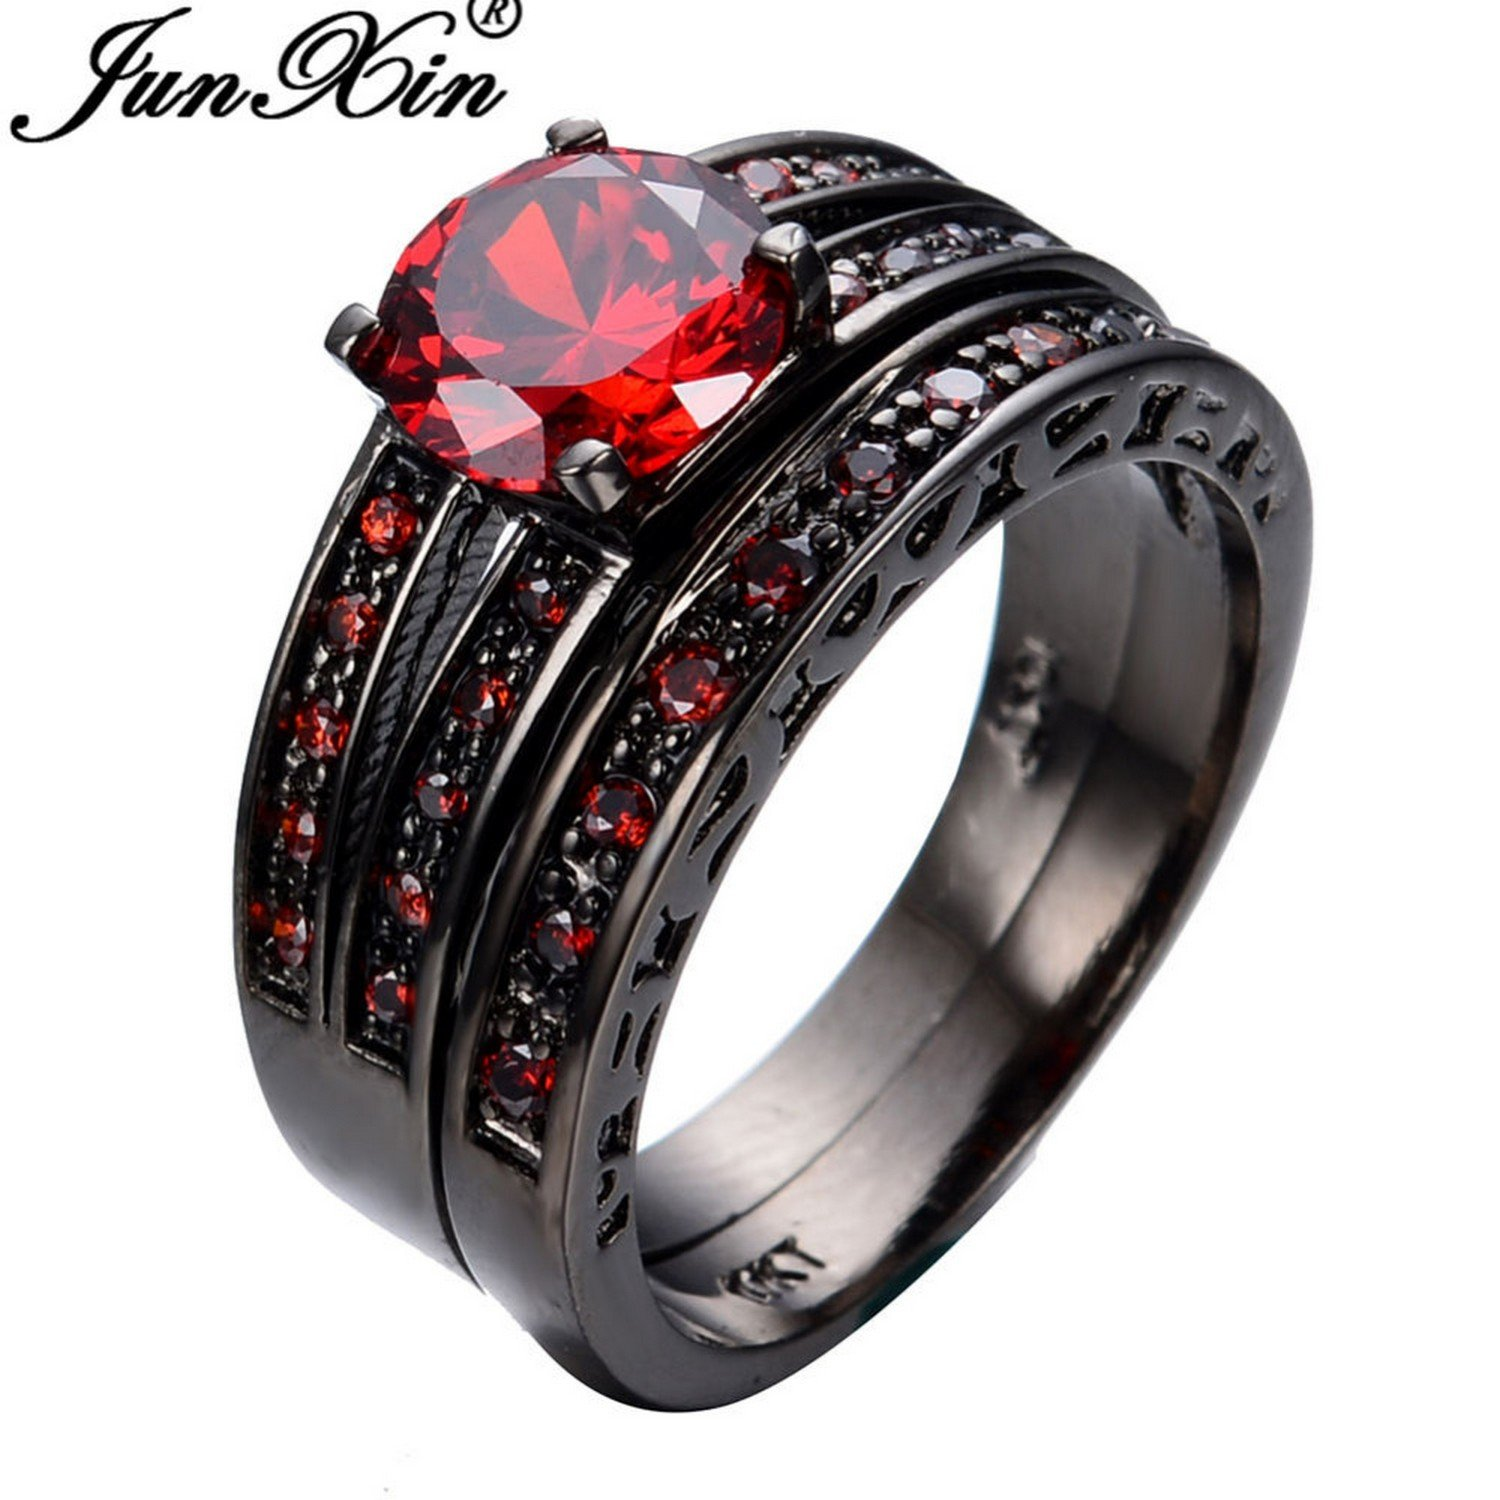 Slyq Jewelry Size 6 7 8 9 10 Red Jewelry 2pcs Red Fashion Engagement Ring Set Black gold Filled Rings for Women and Men